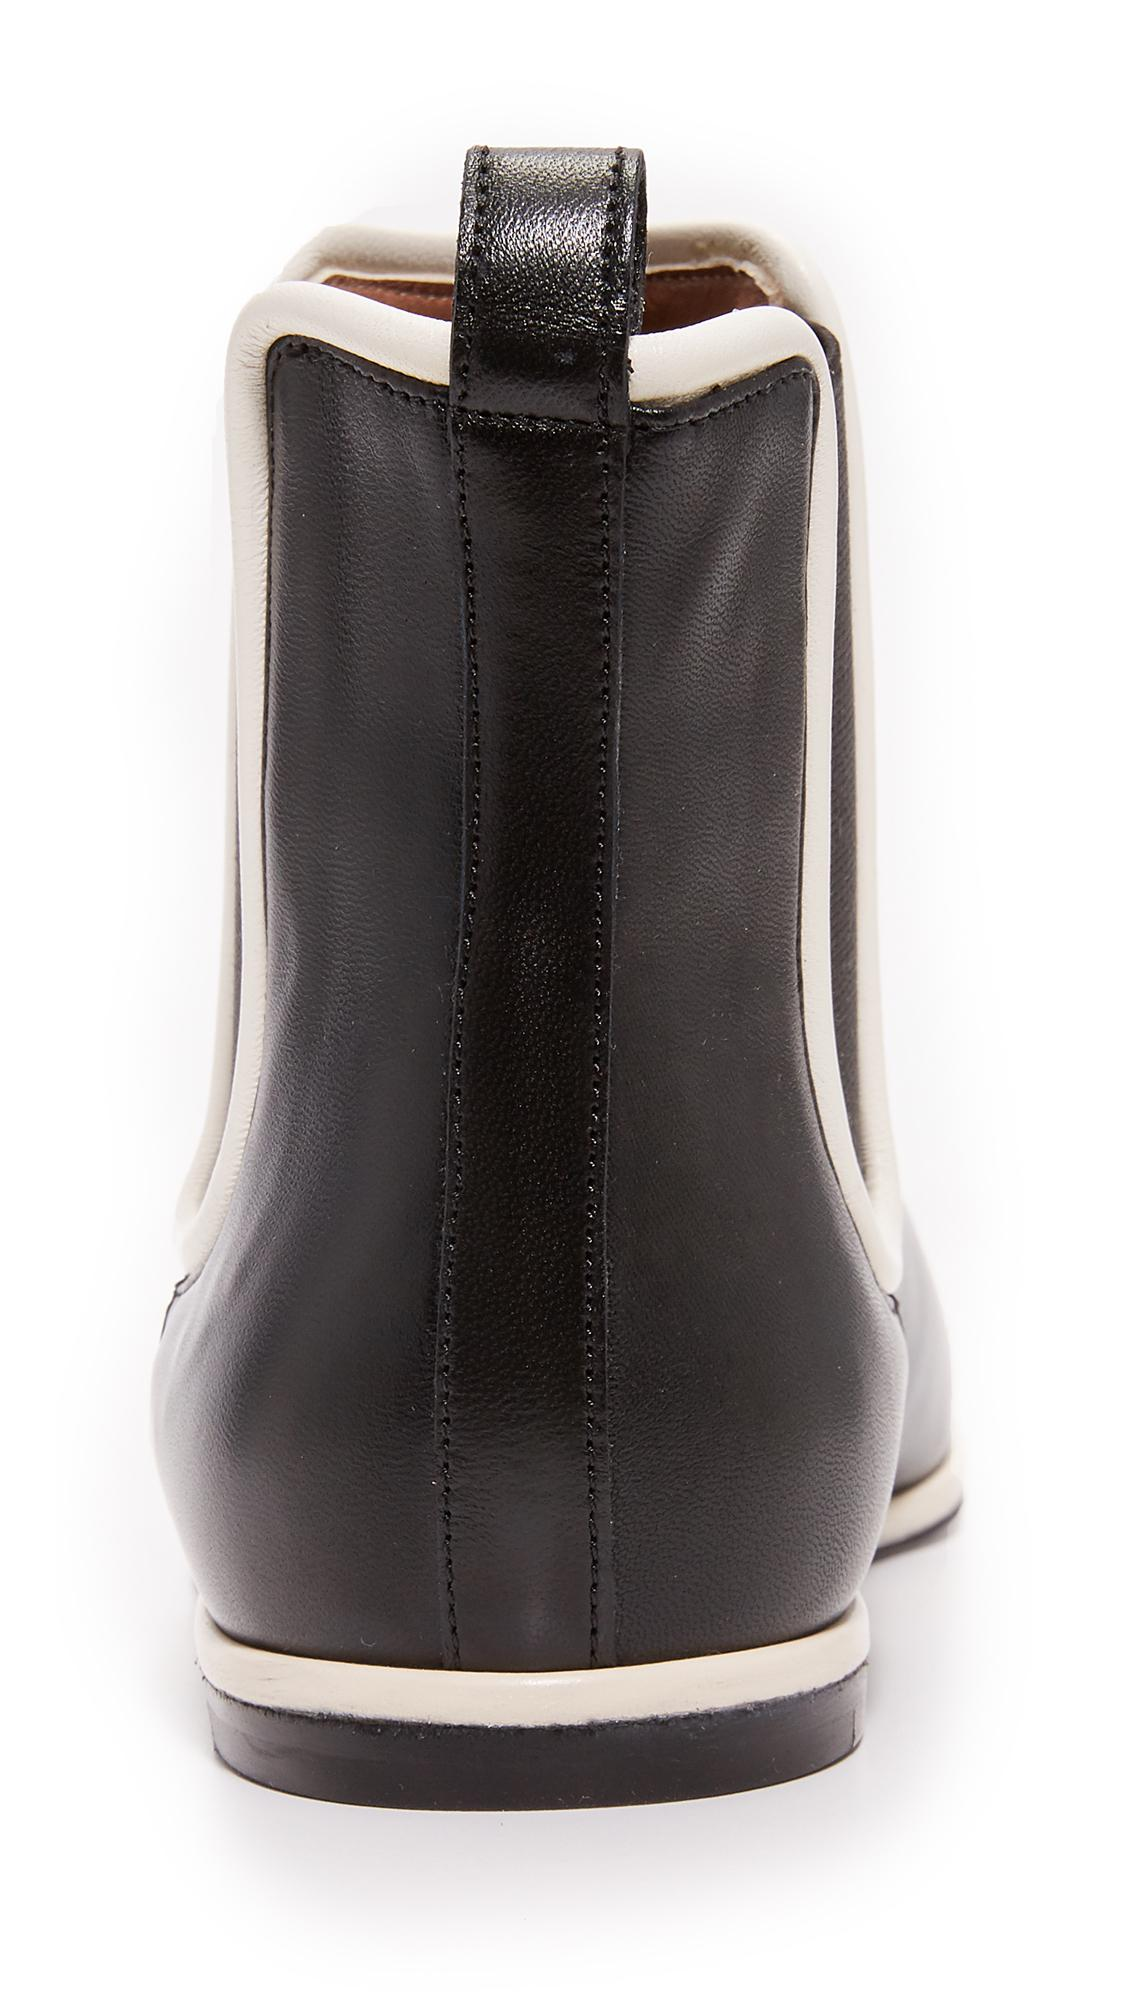 Marni Rubber Ankle Booties in Black/Antique White (Black)